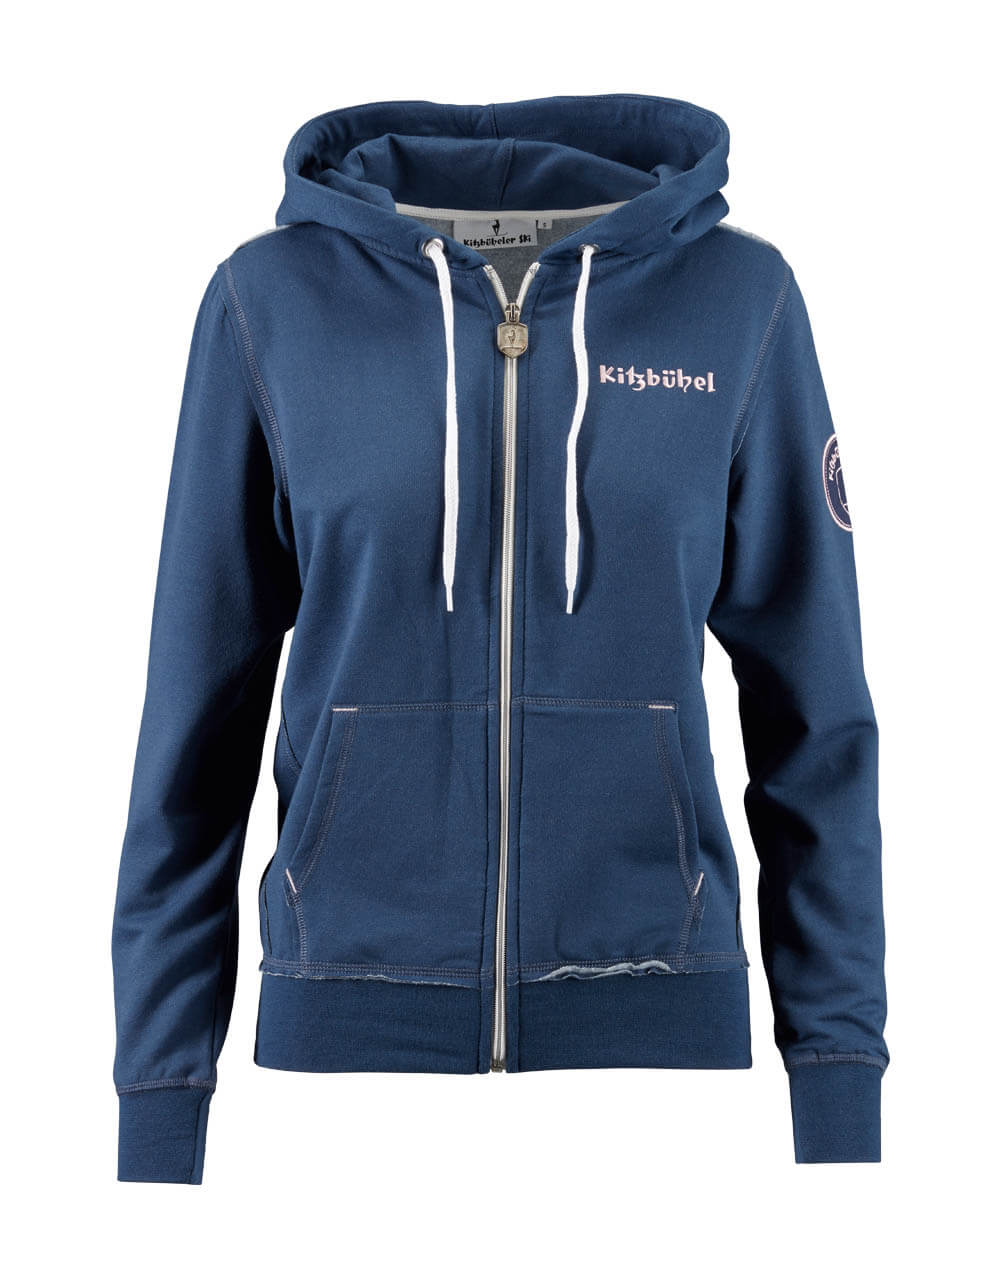 687712601 Damen Sweatjacke navy